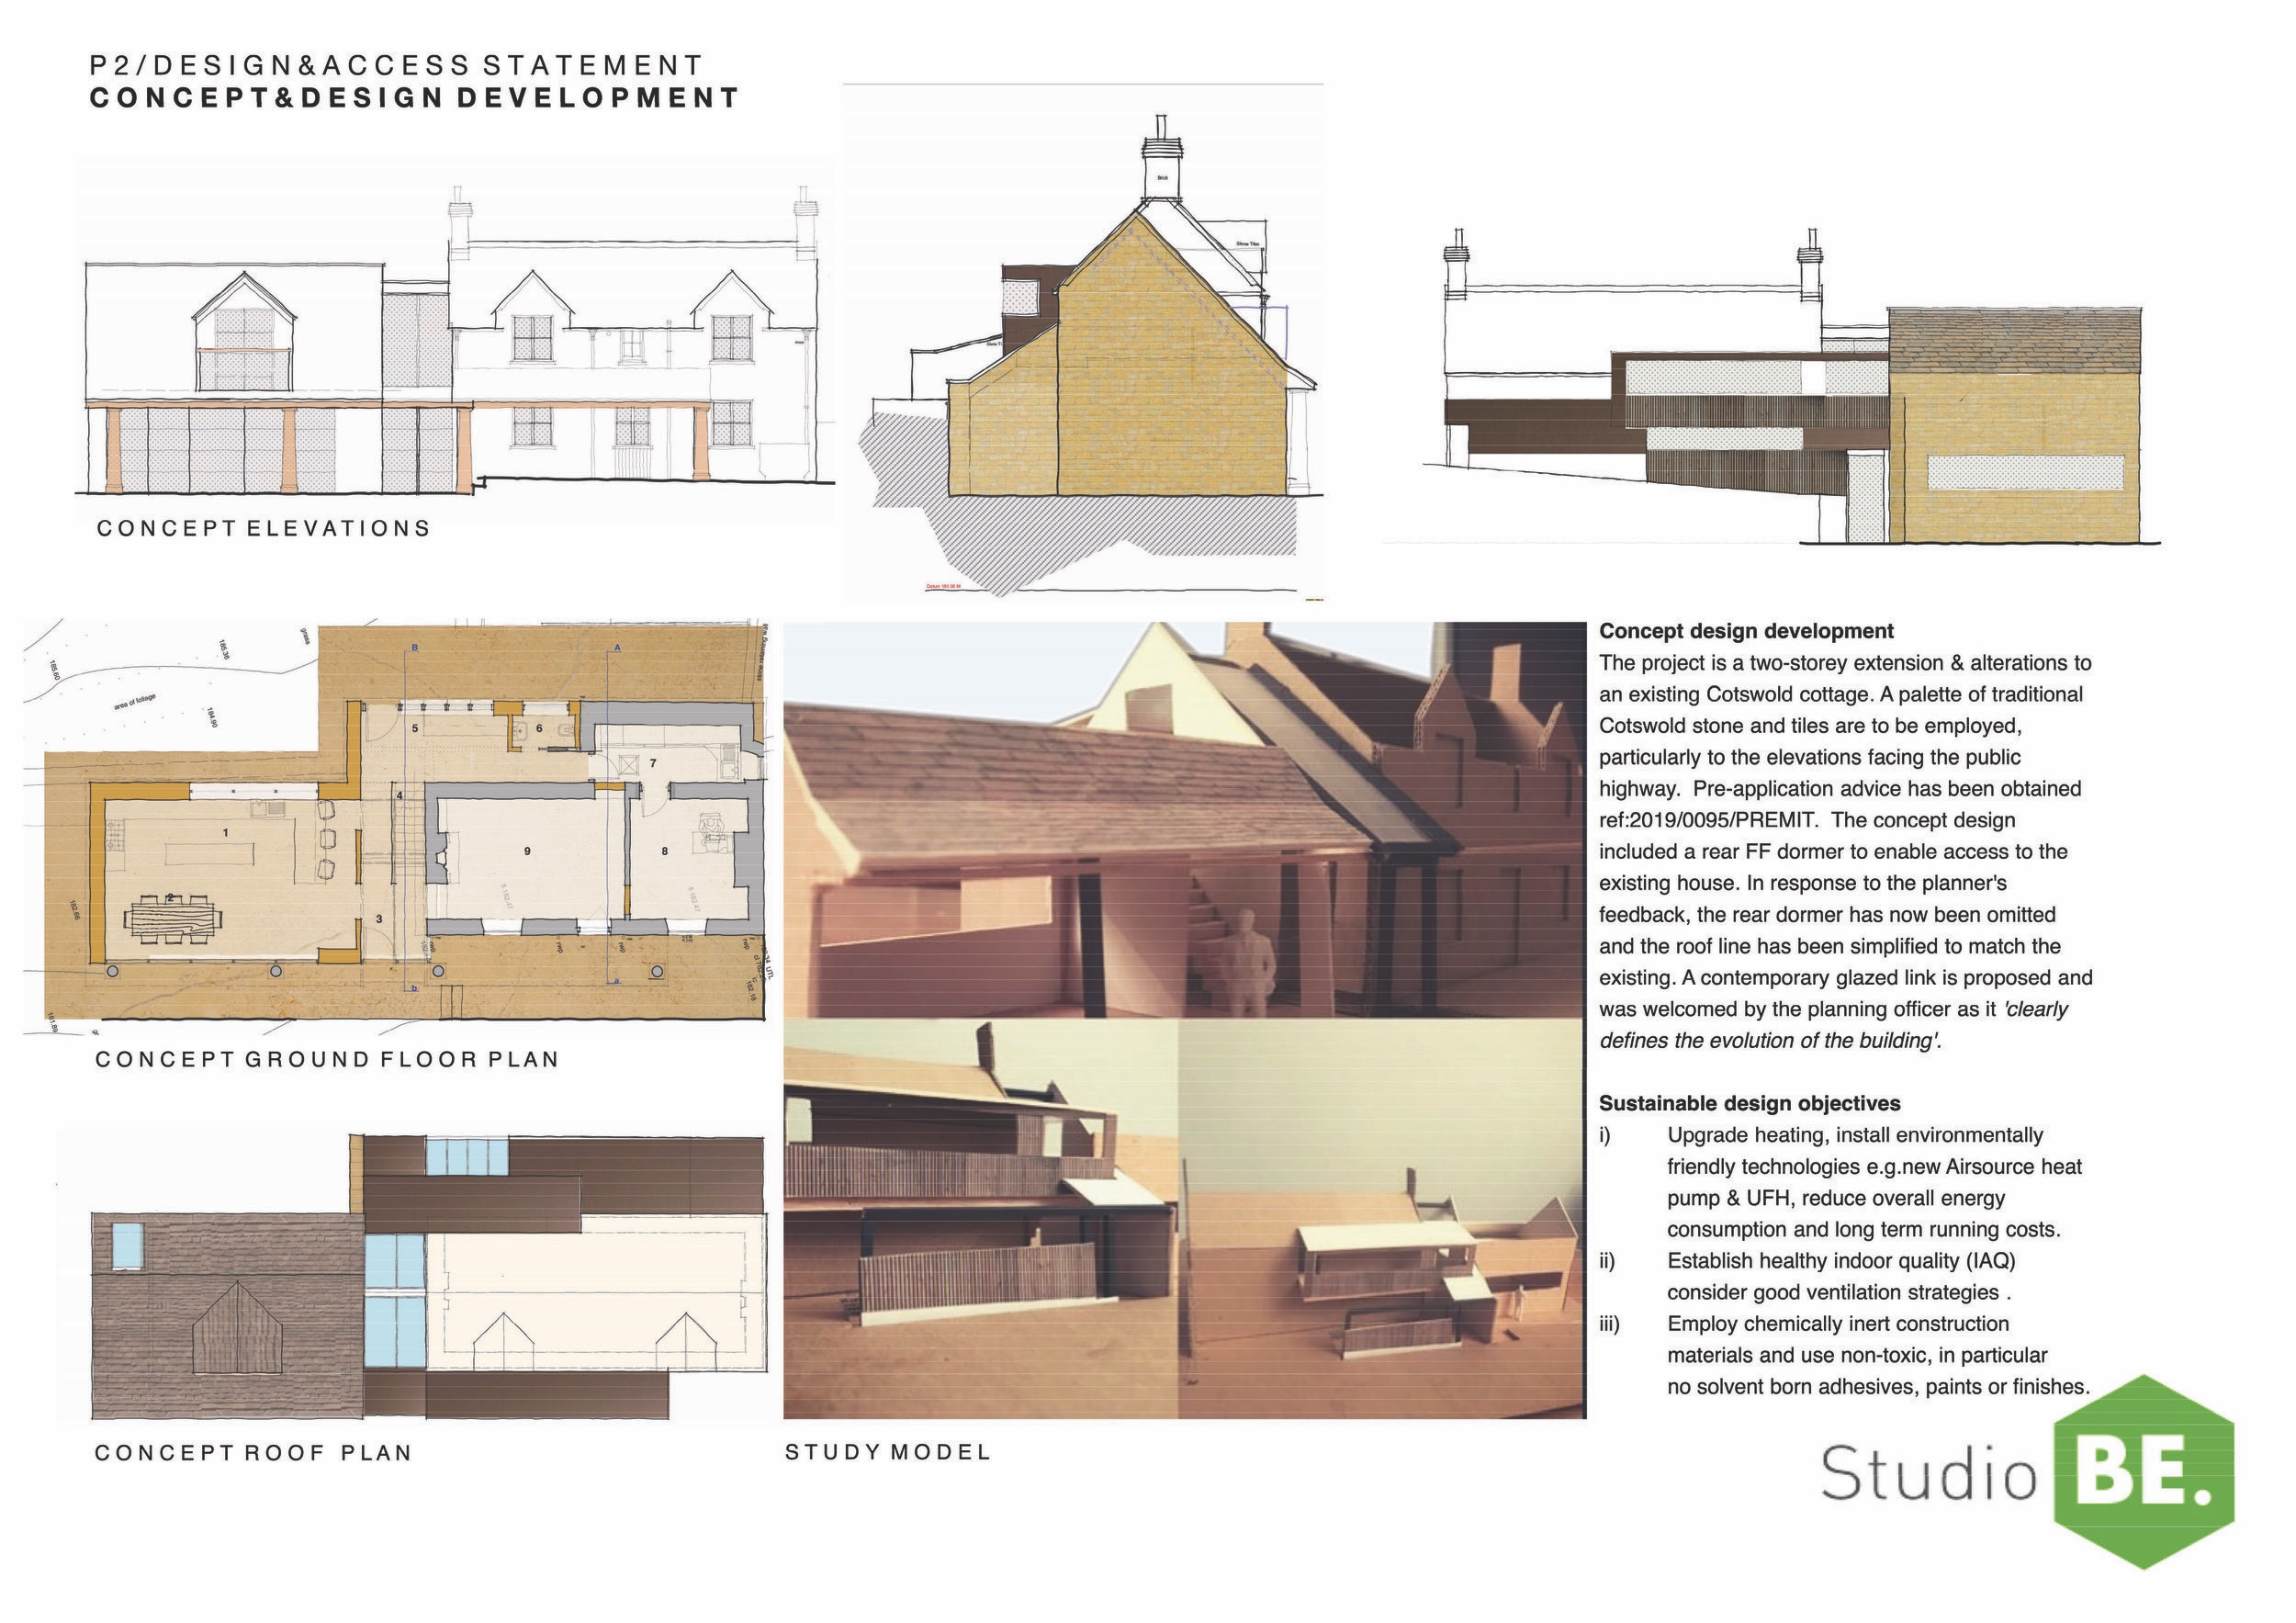 Two-storey extension to Cotswold cottage near Stroud, Gloucestershire. The key objectives include employing a palette of traditional, local & sustainable construction materials, an energy efficient design and to establish a healthy indoor climate.